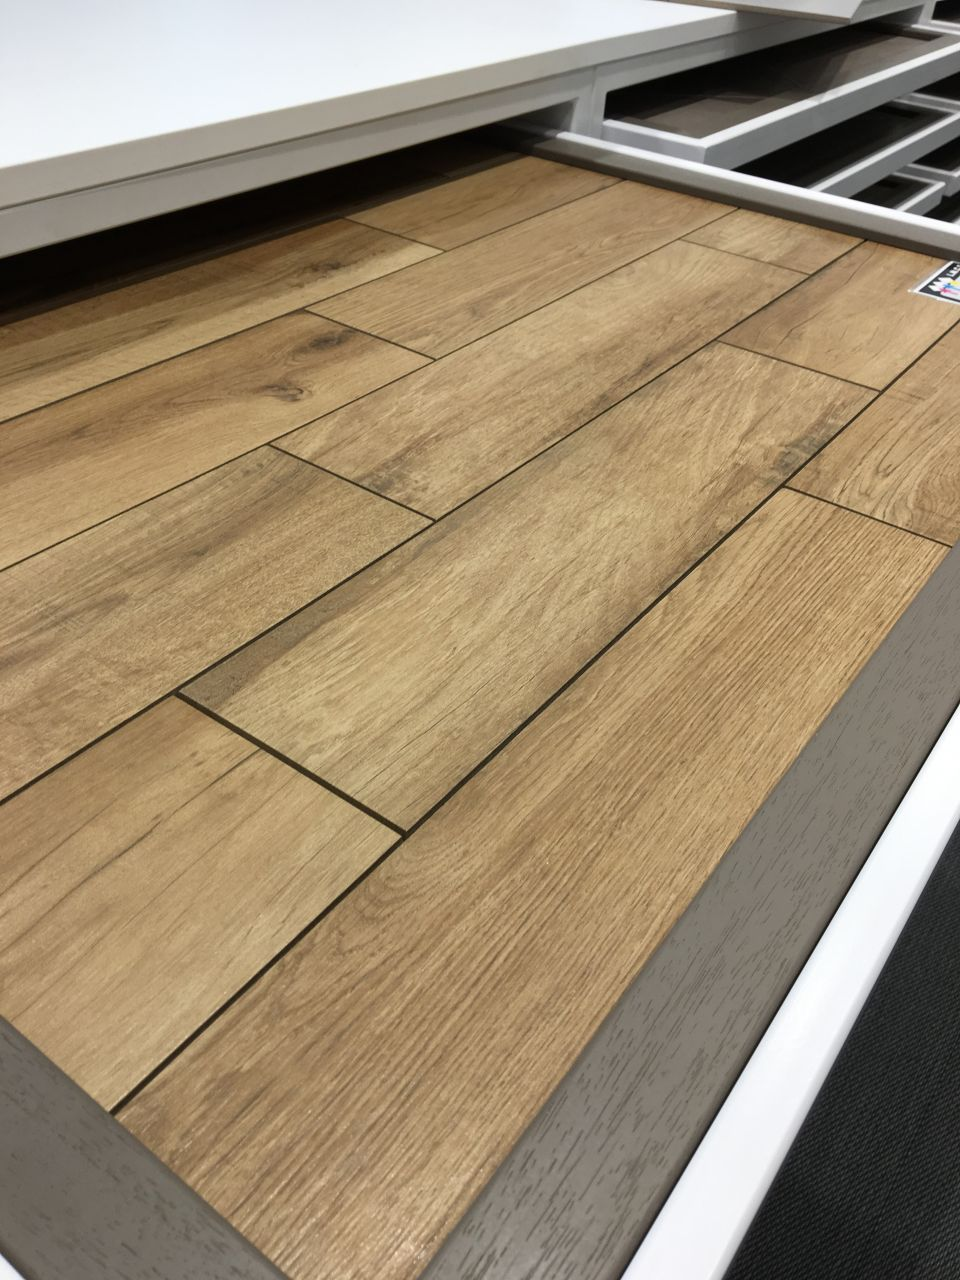 Choix couleur de joint carrelage imitation parquet 11 for Pose en quinconce carrelage